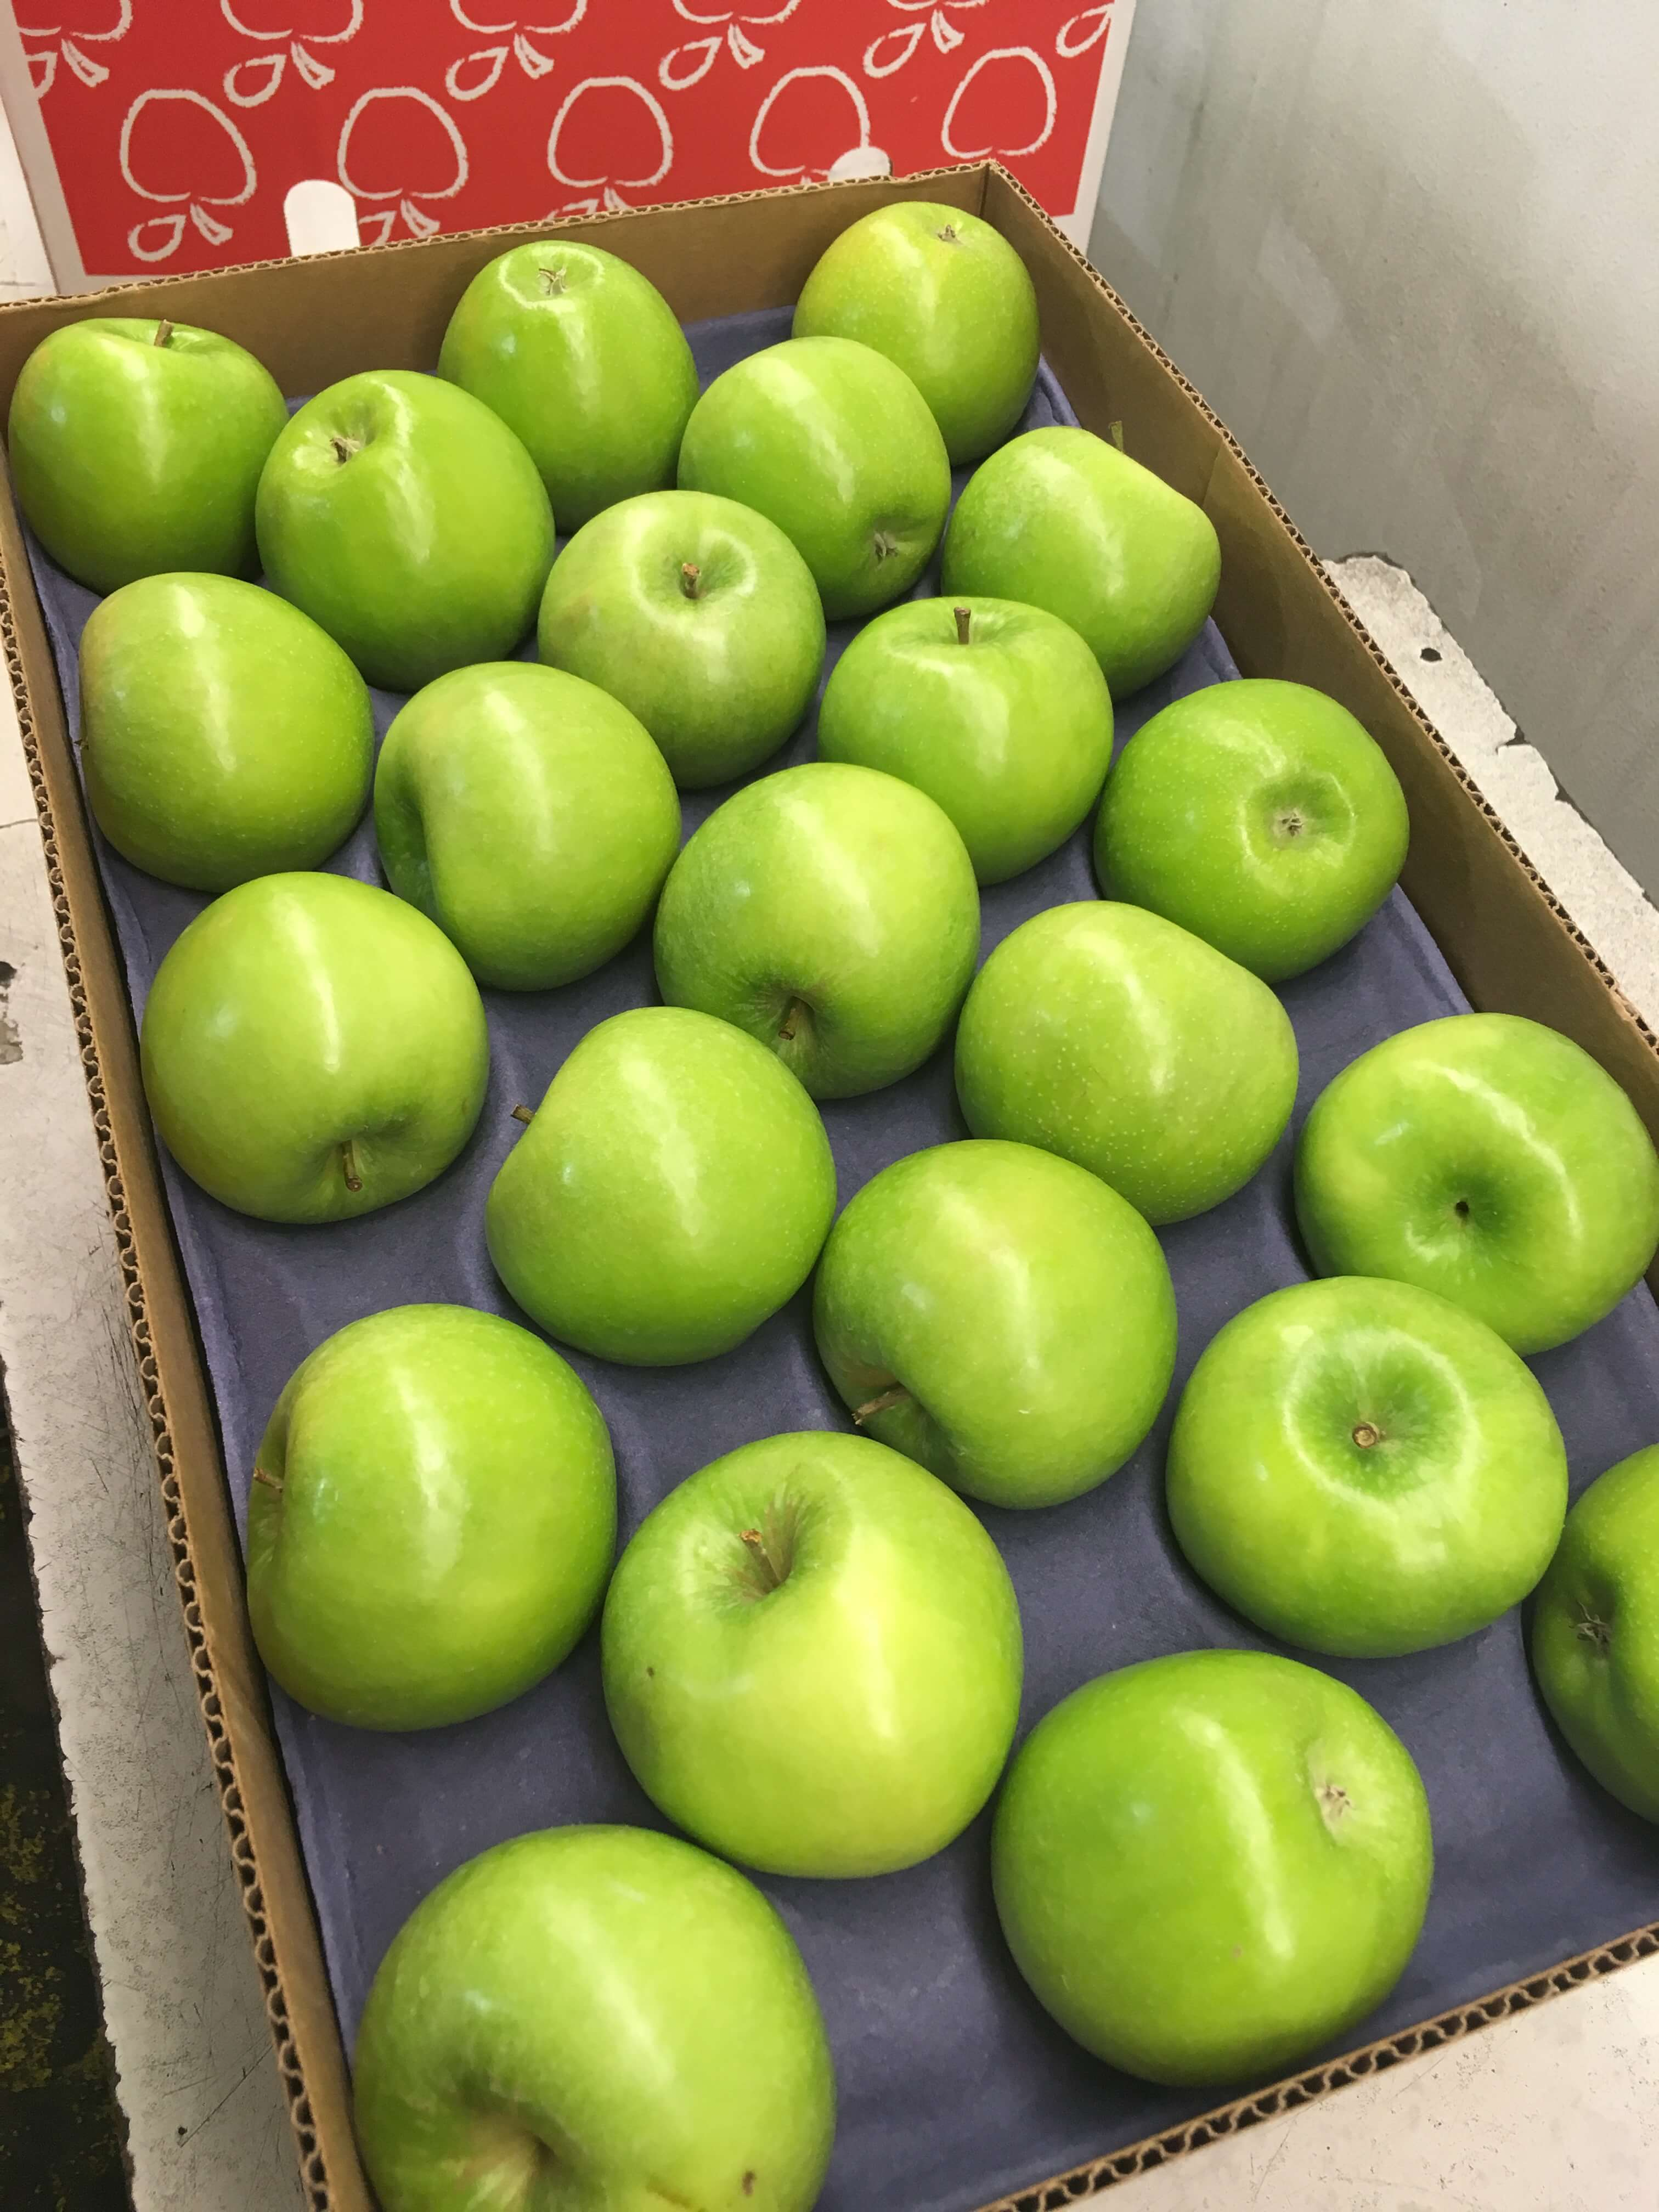 Now Available: Granny Smith Apples